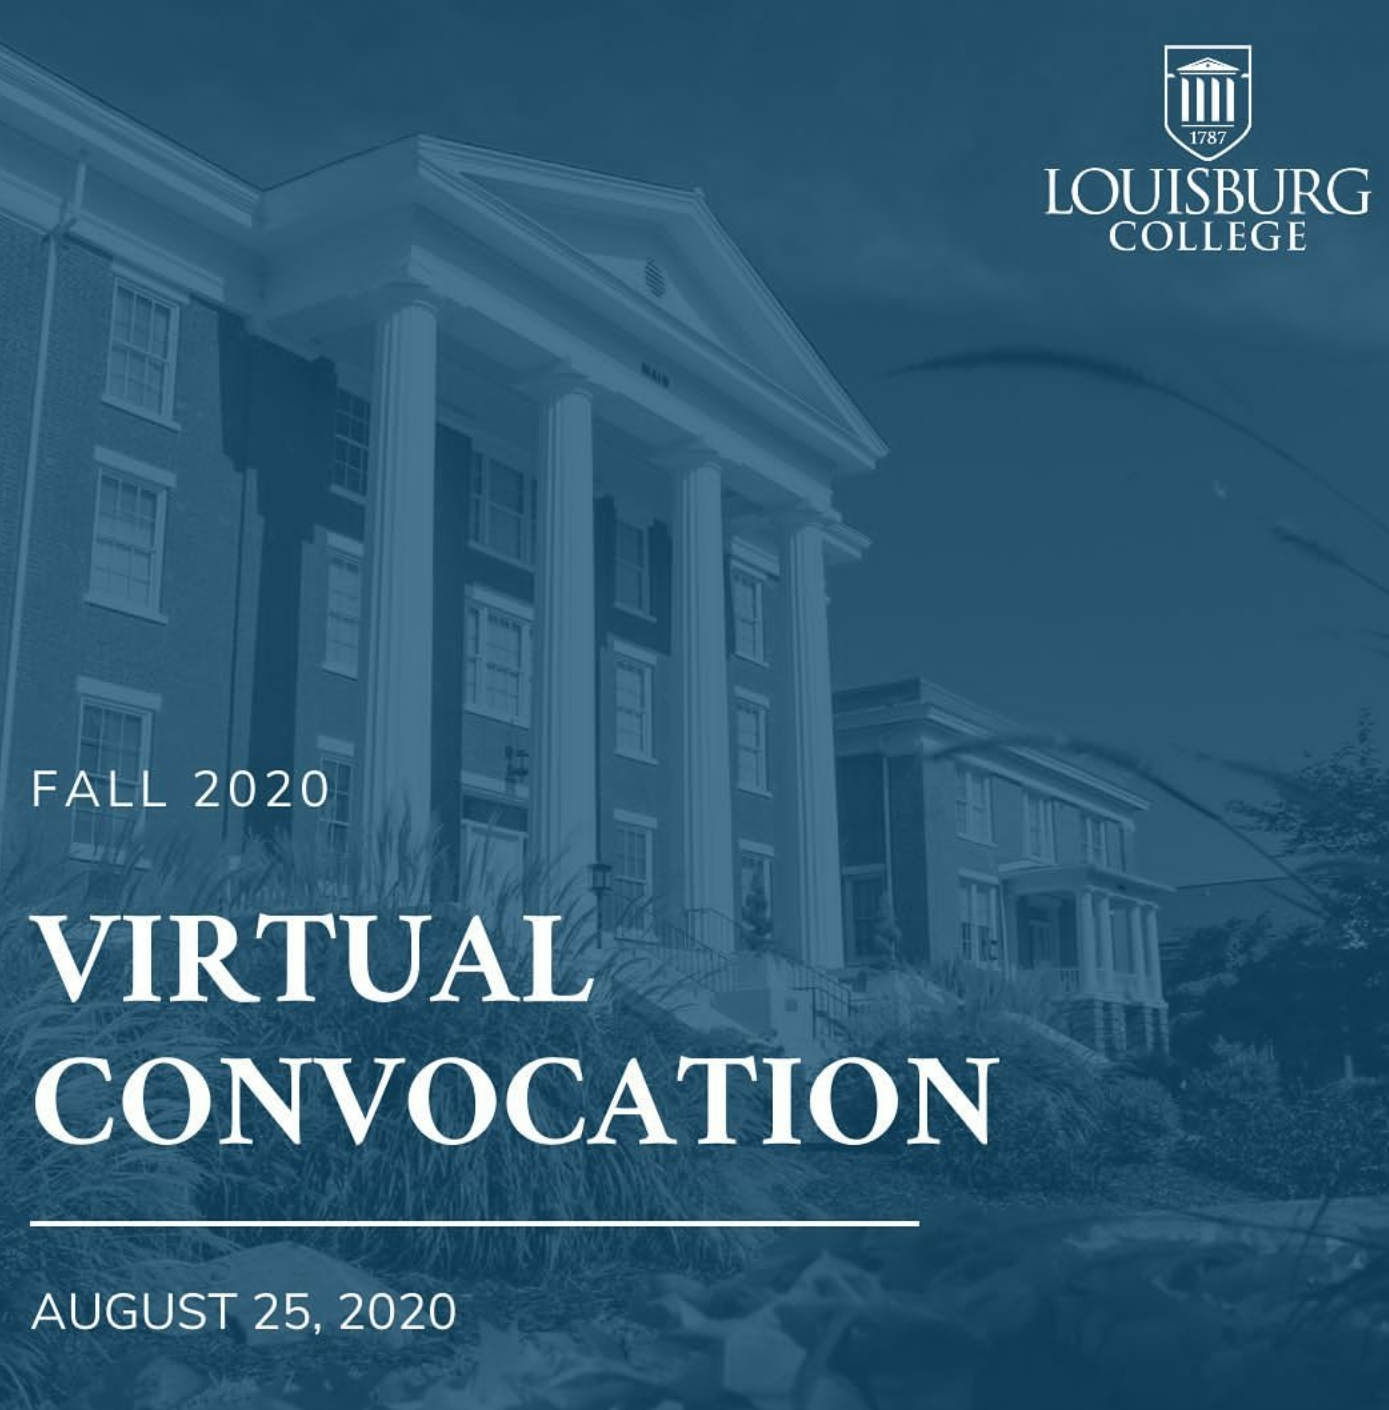 Louisburg College 2020-2021 Virtual Convocation